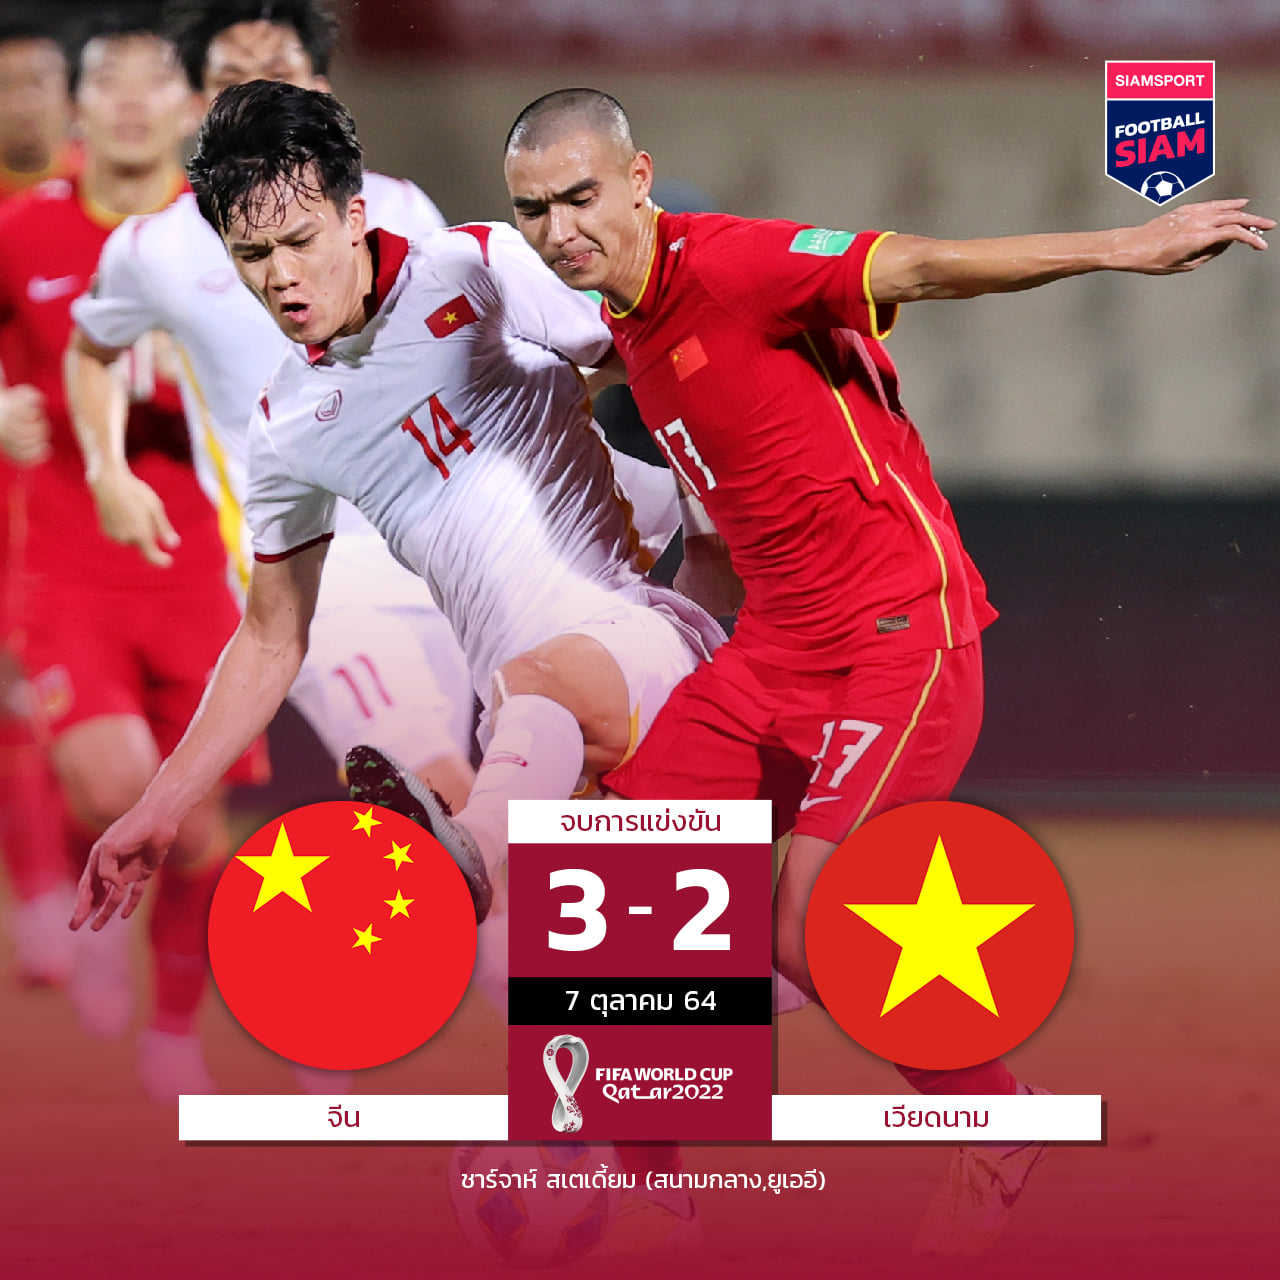 Losing on a winning streak against China, the Vietnamese team was encouraged by Thai fans 1